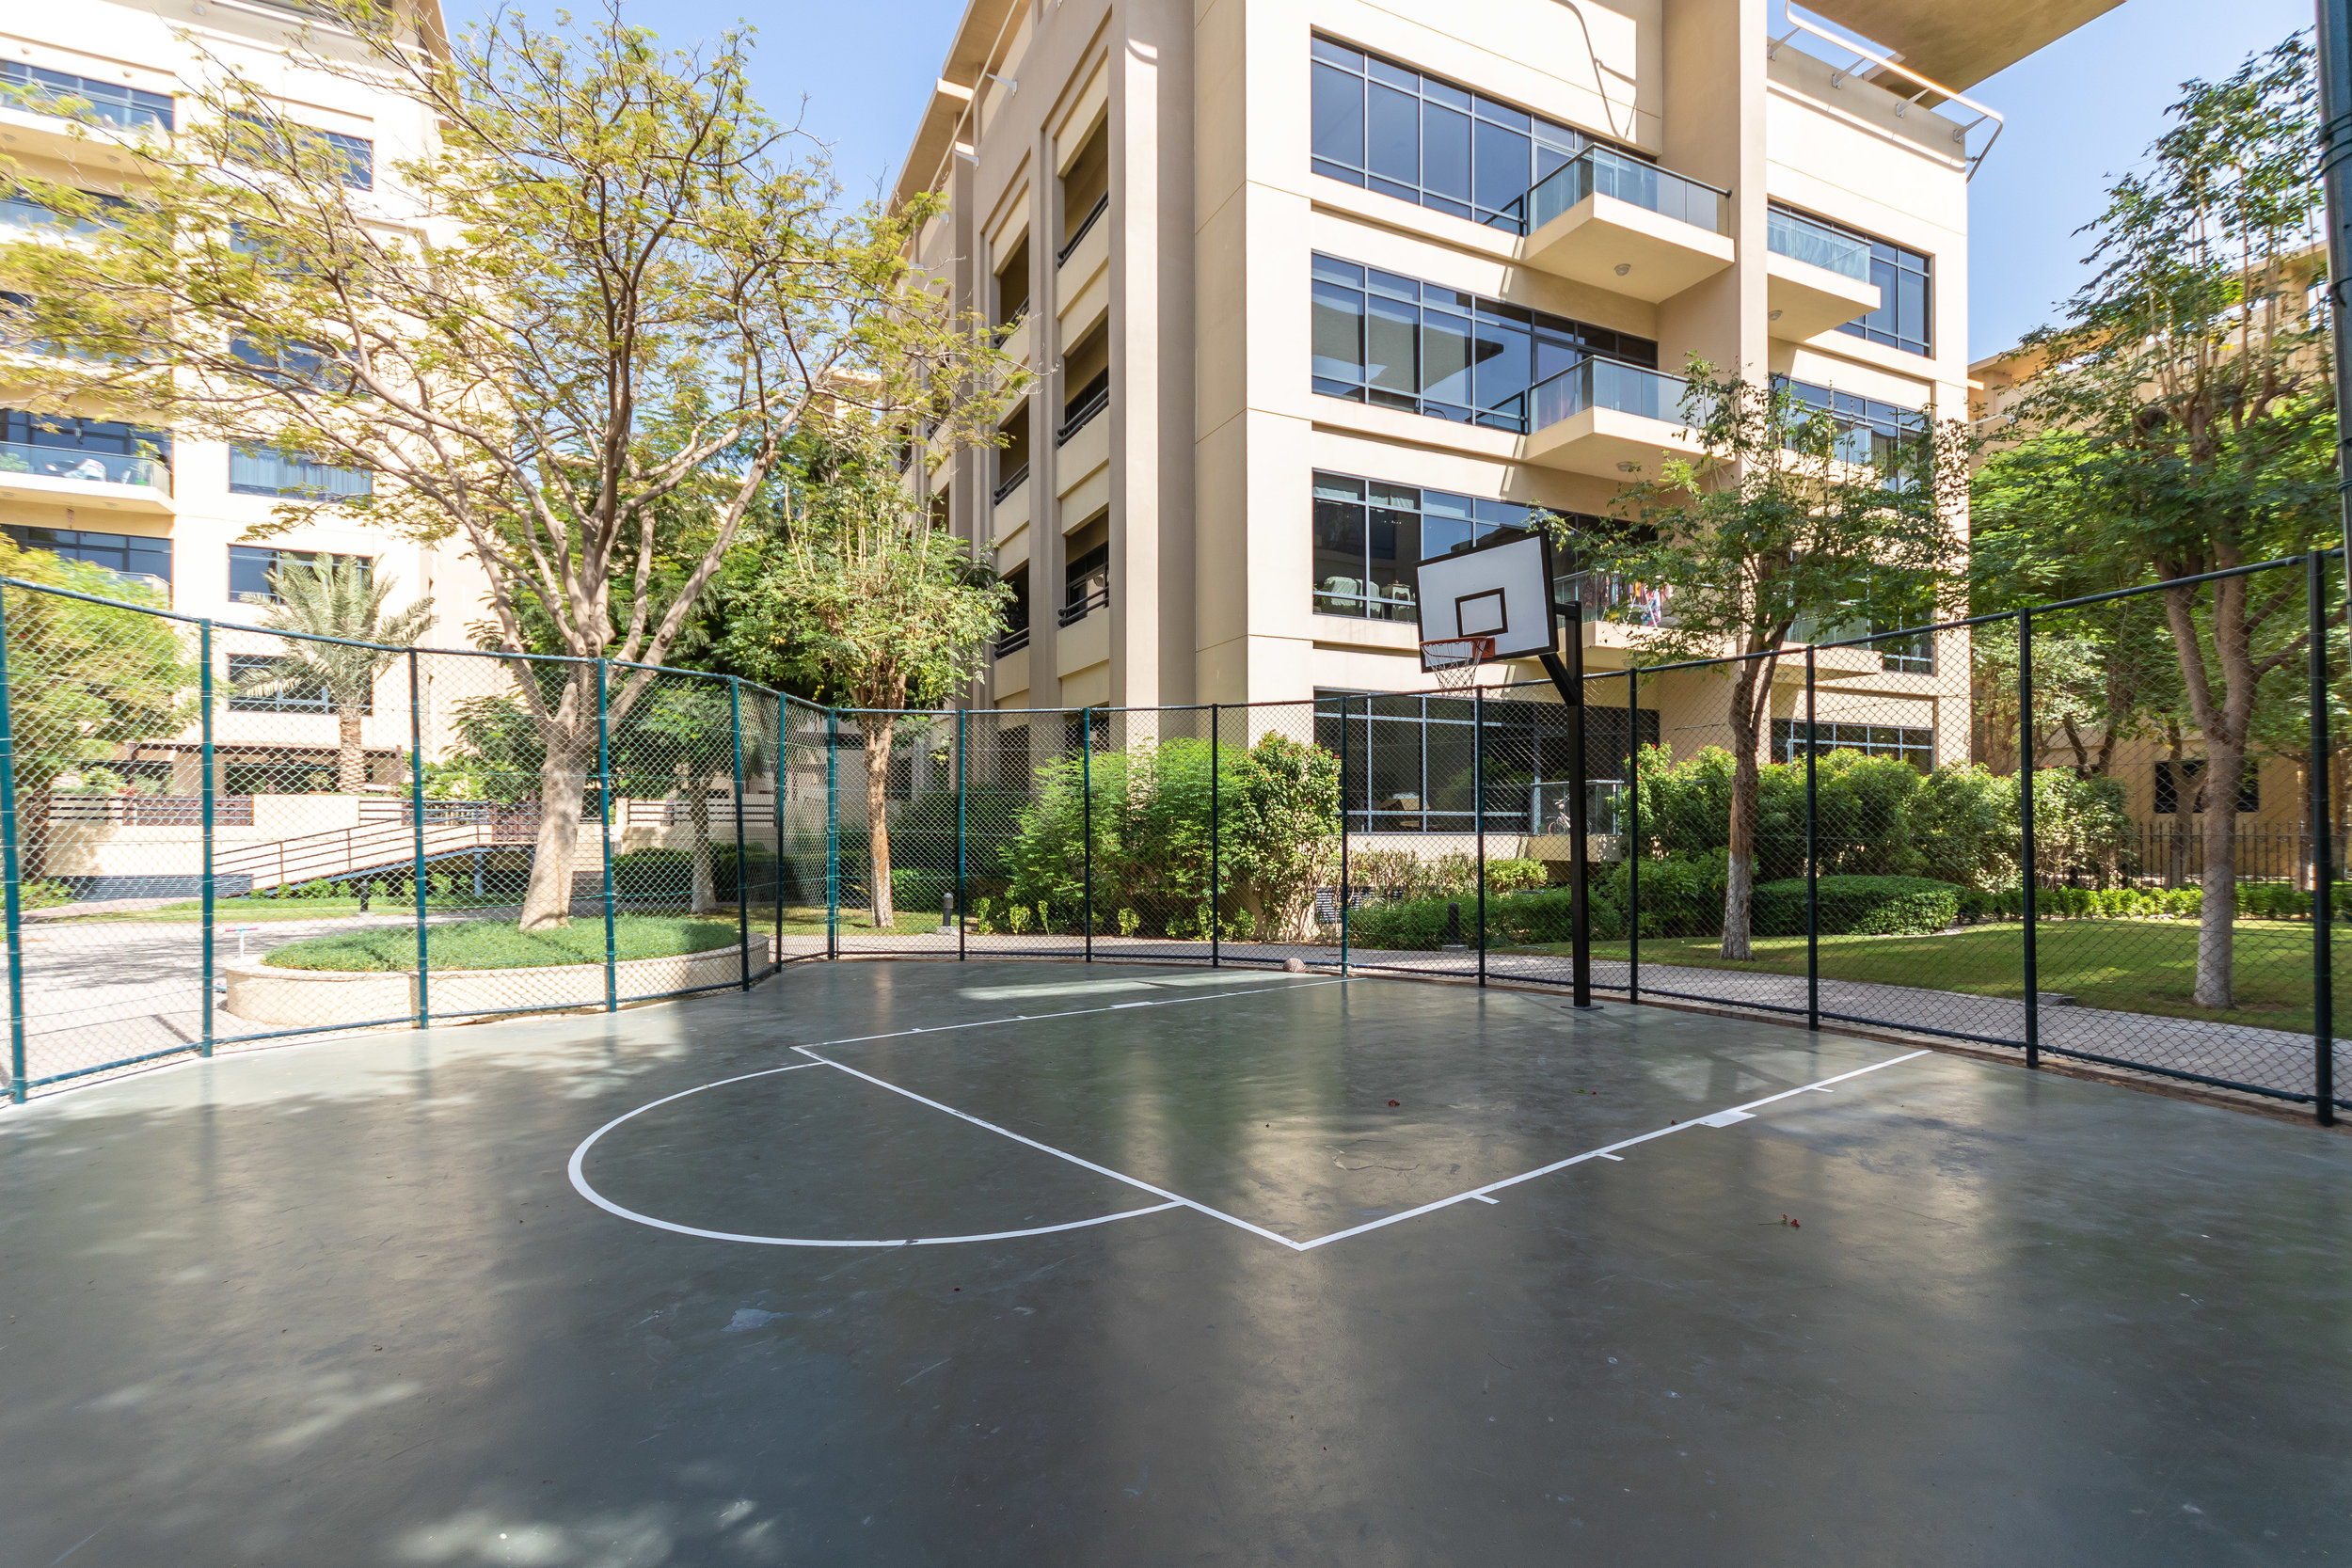 Basketball court to relax and play